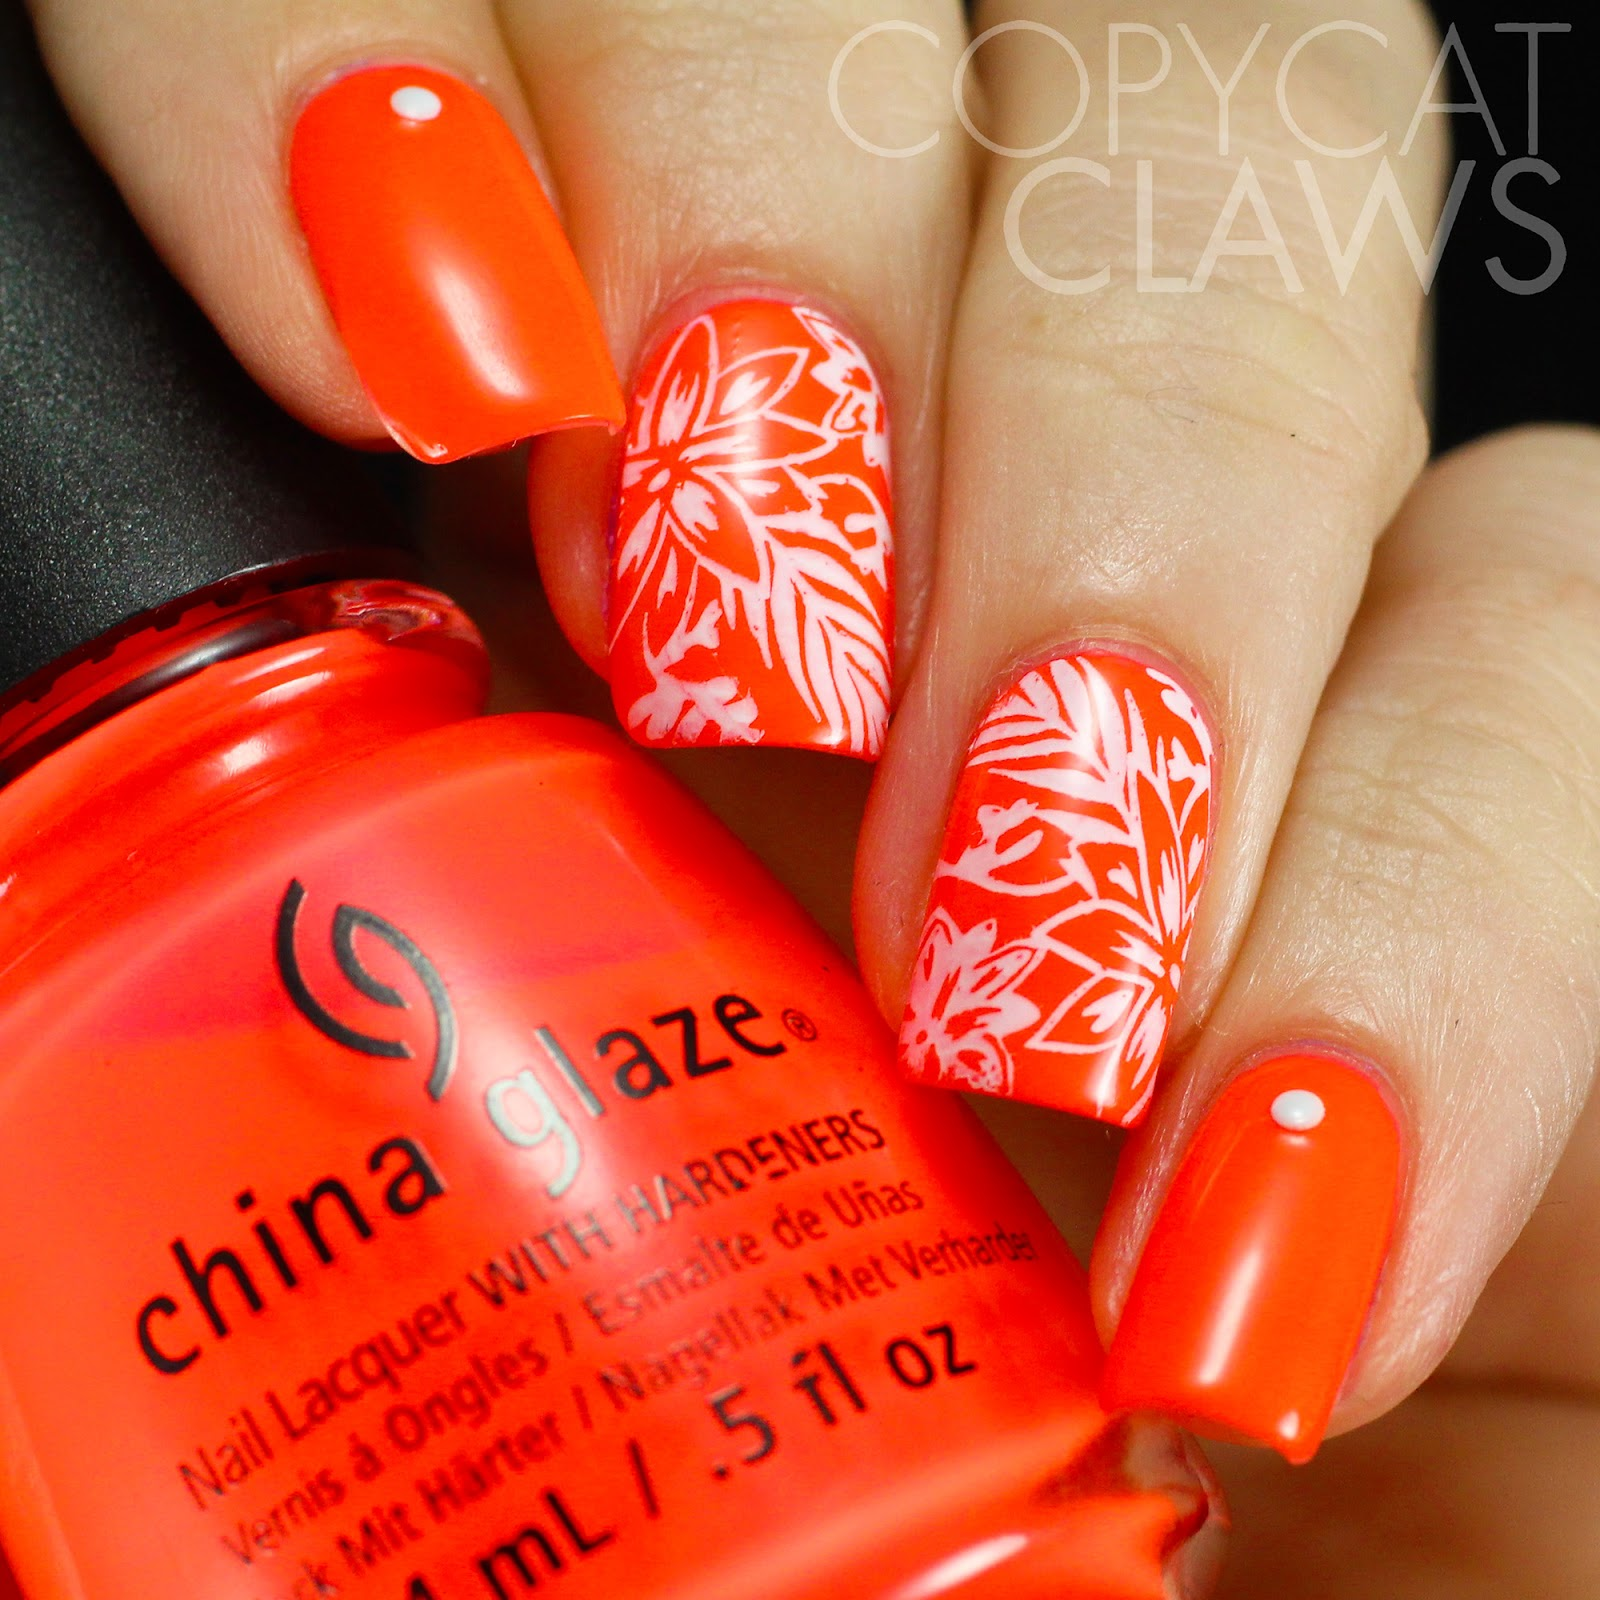 Copycat Claws: China Glaze Pool Party with Tropical Stamping